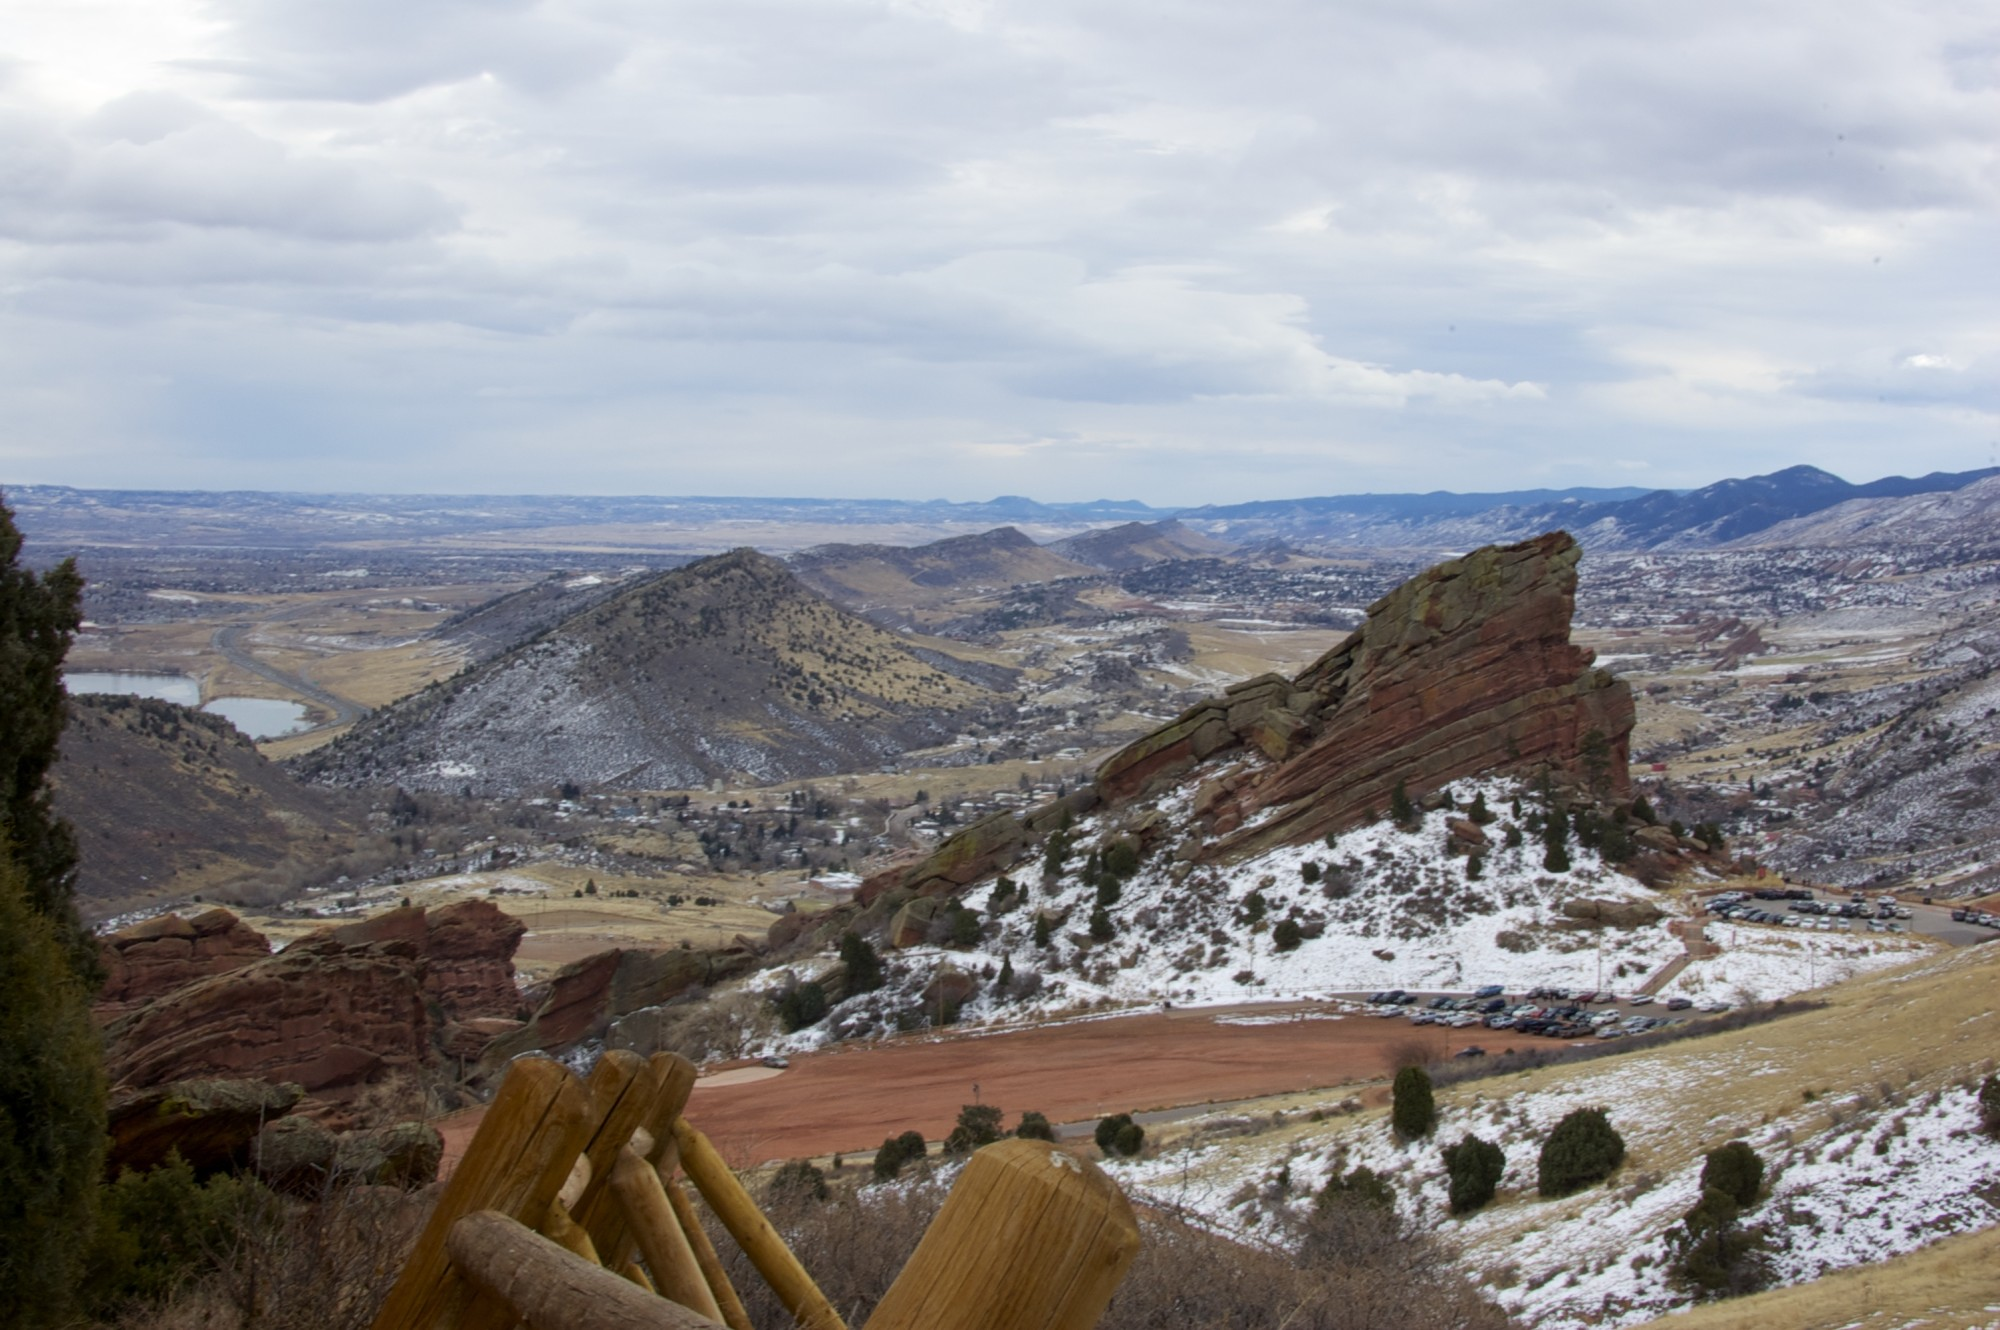 Pretty views from Red Rocks